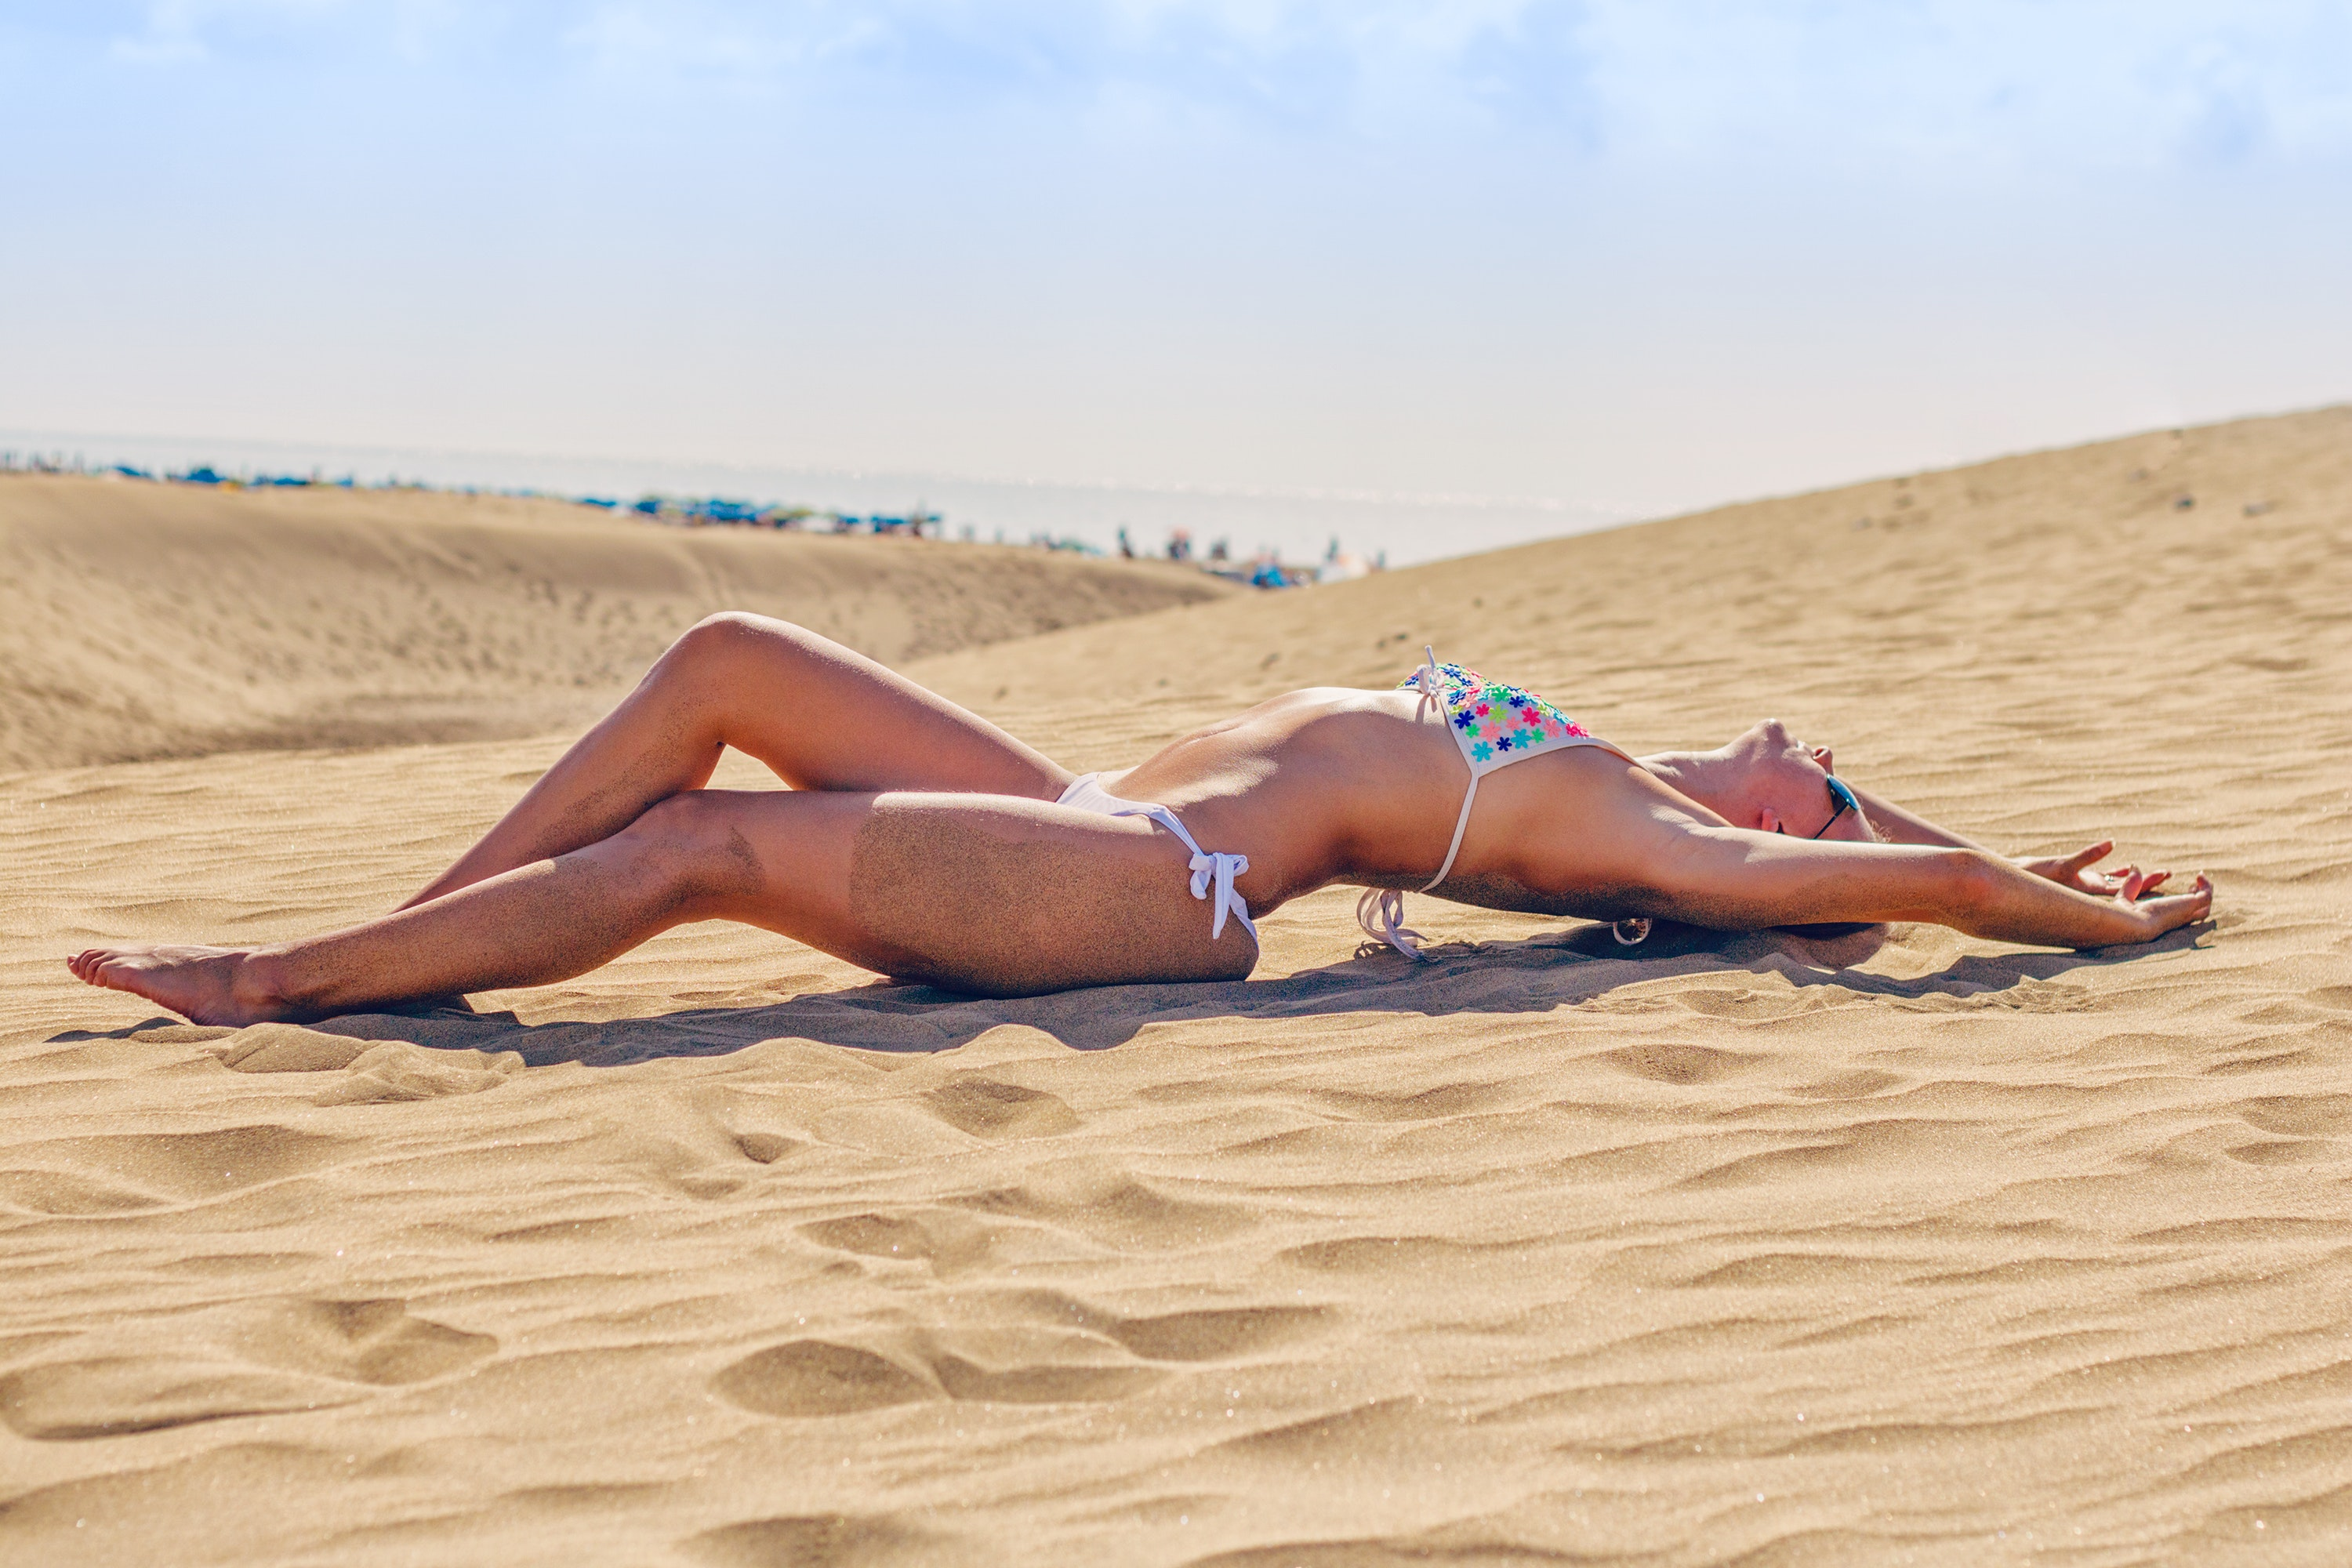 Woman Lying on Sand at Beach, Barefoot, Seashore, Water, Vacation, HQ Photo